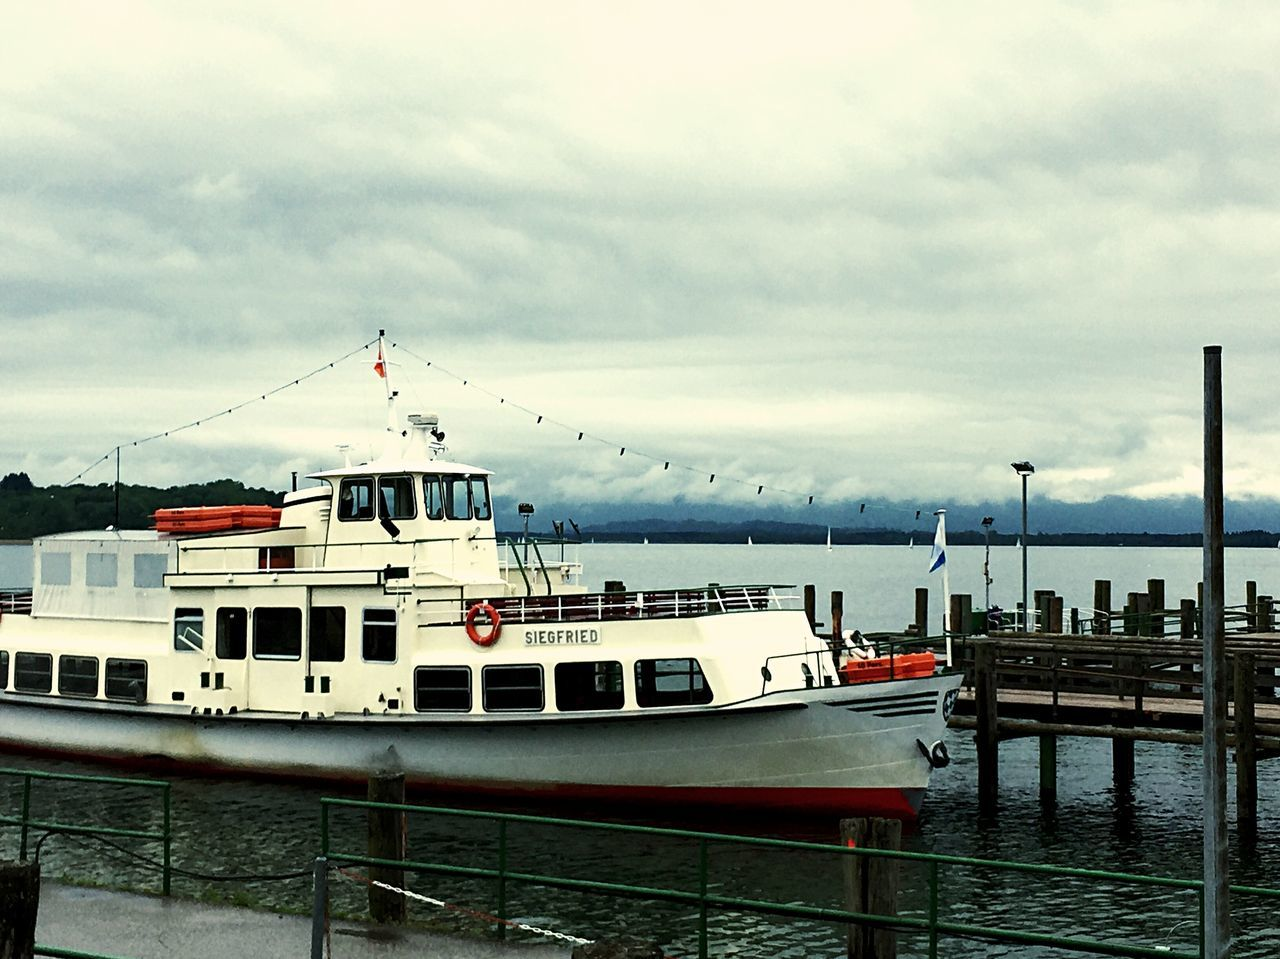 sky, transportation, nautical vessel, water, cloud - sky, mode of transport, outdoors, no people, moored, day, sea, nature, built structure, travel destinations, architecture, harbor, mountain, beauty in nature